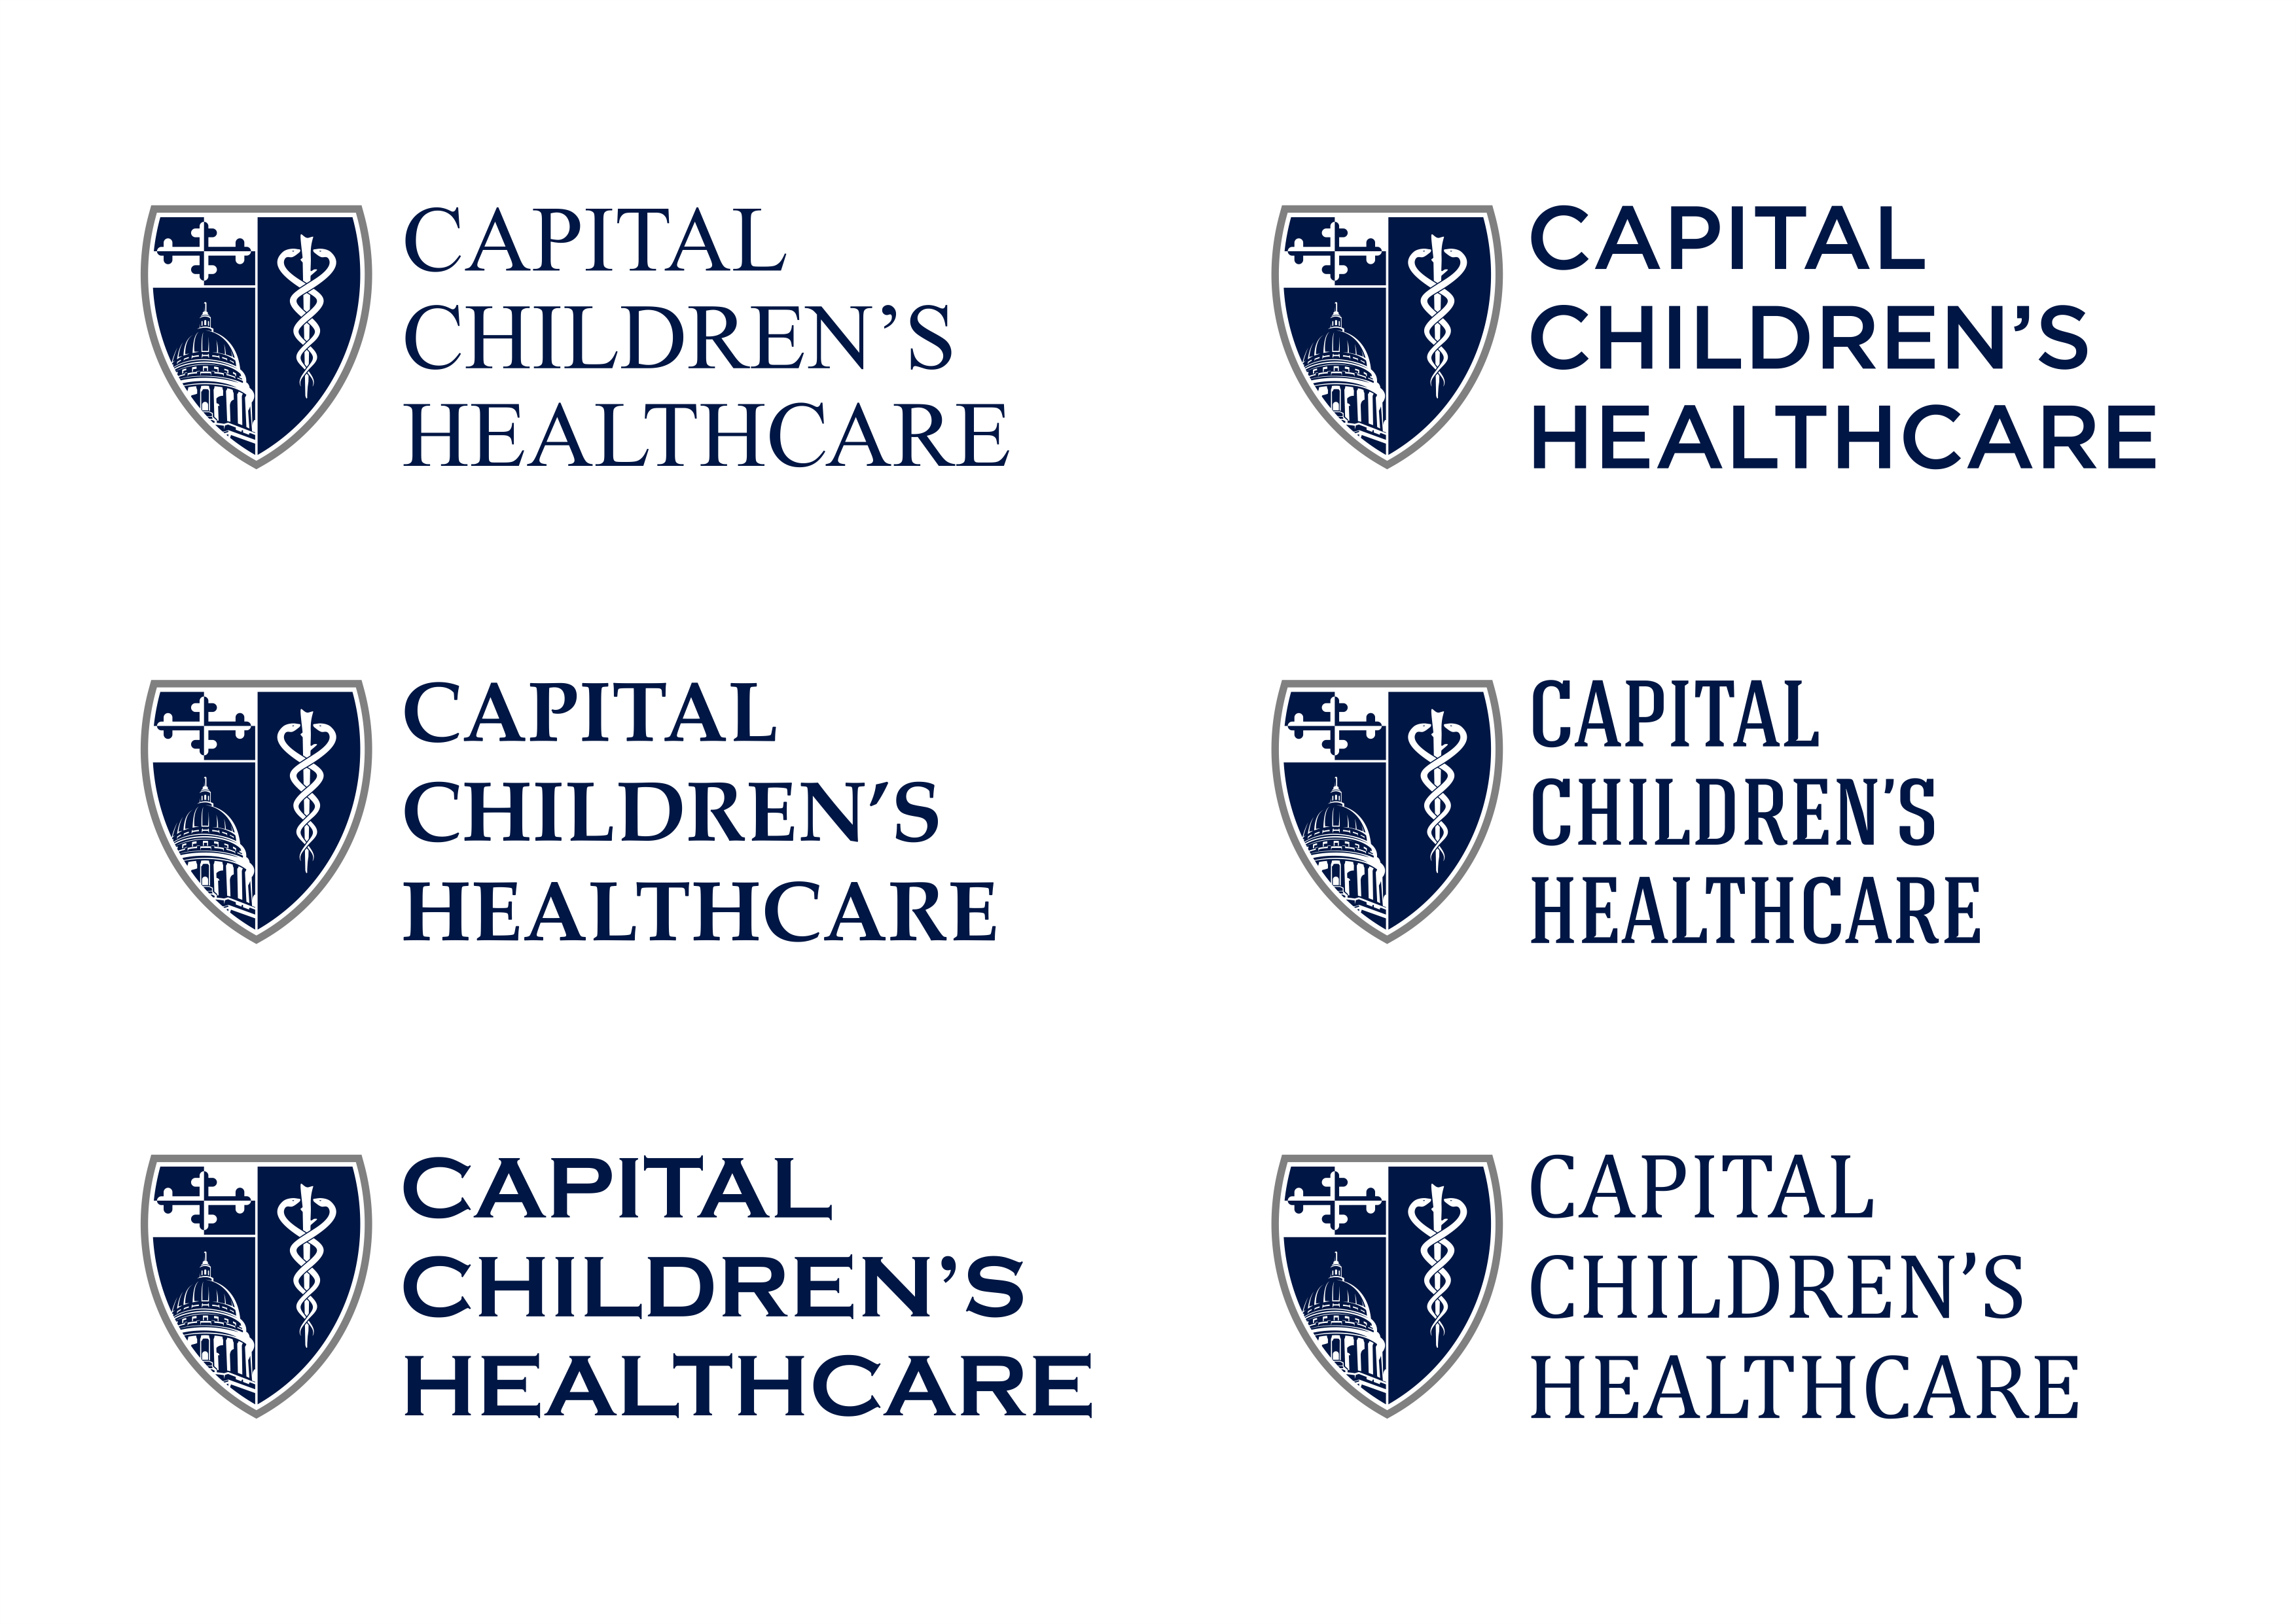 Design a Simple Medical Shield for Capital Children's Healthcare